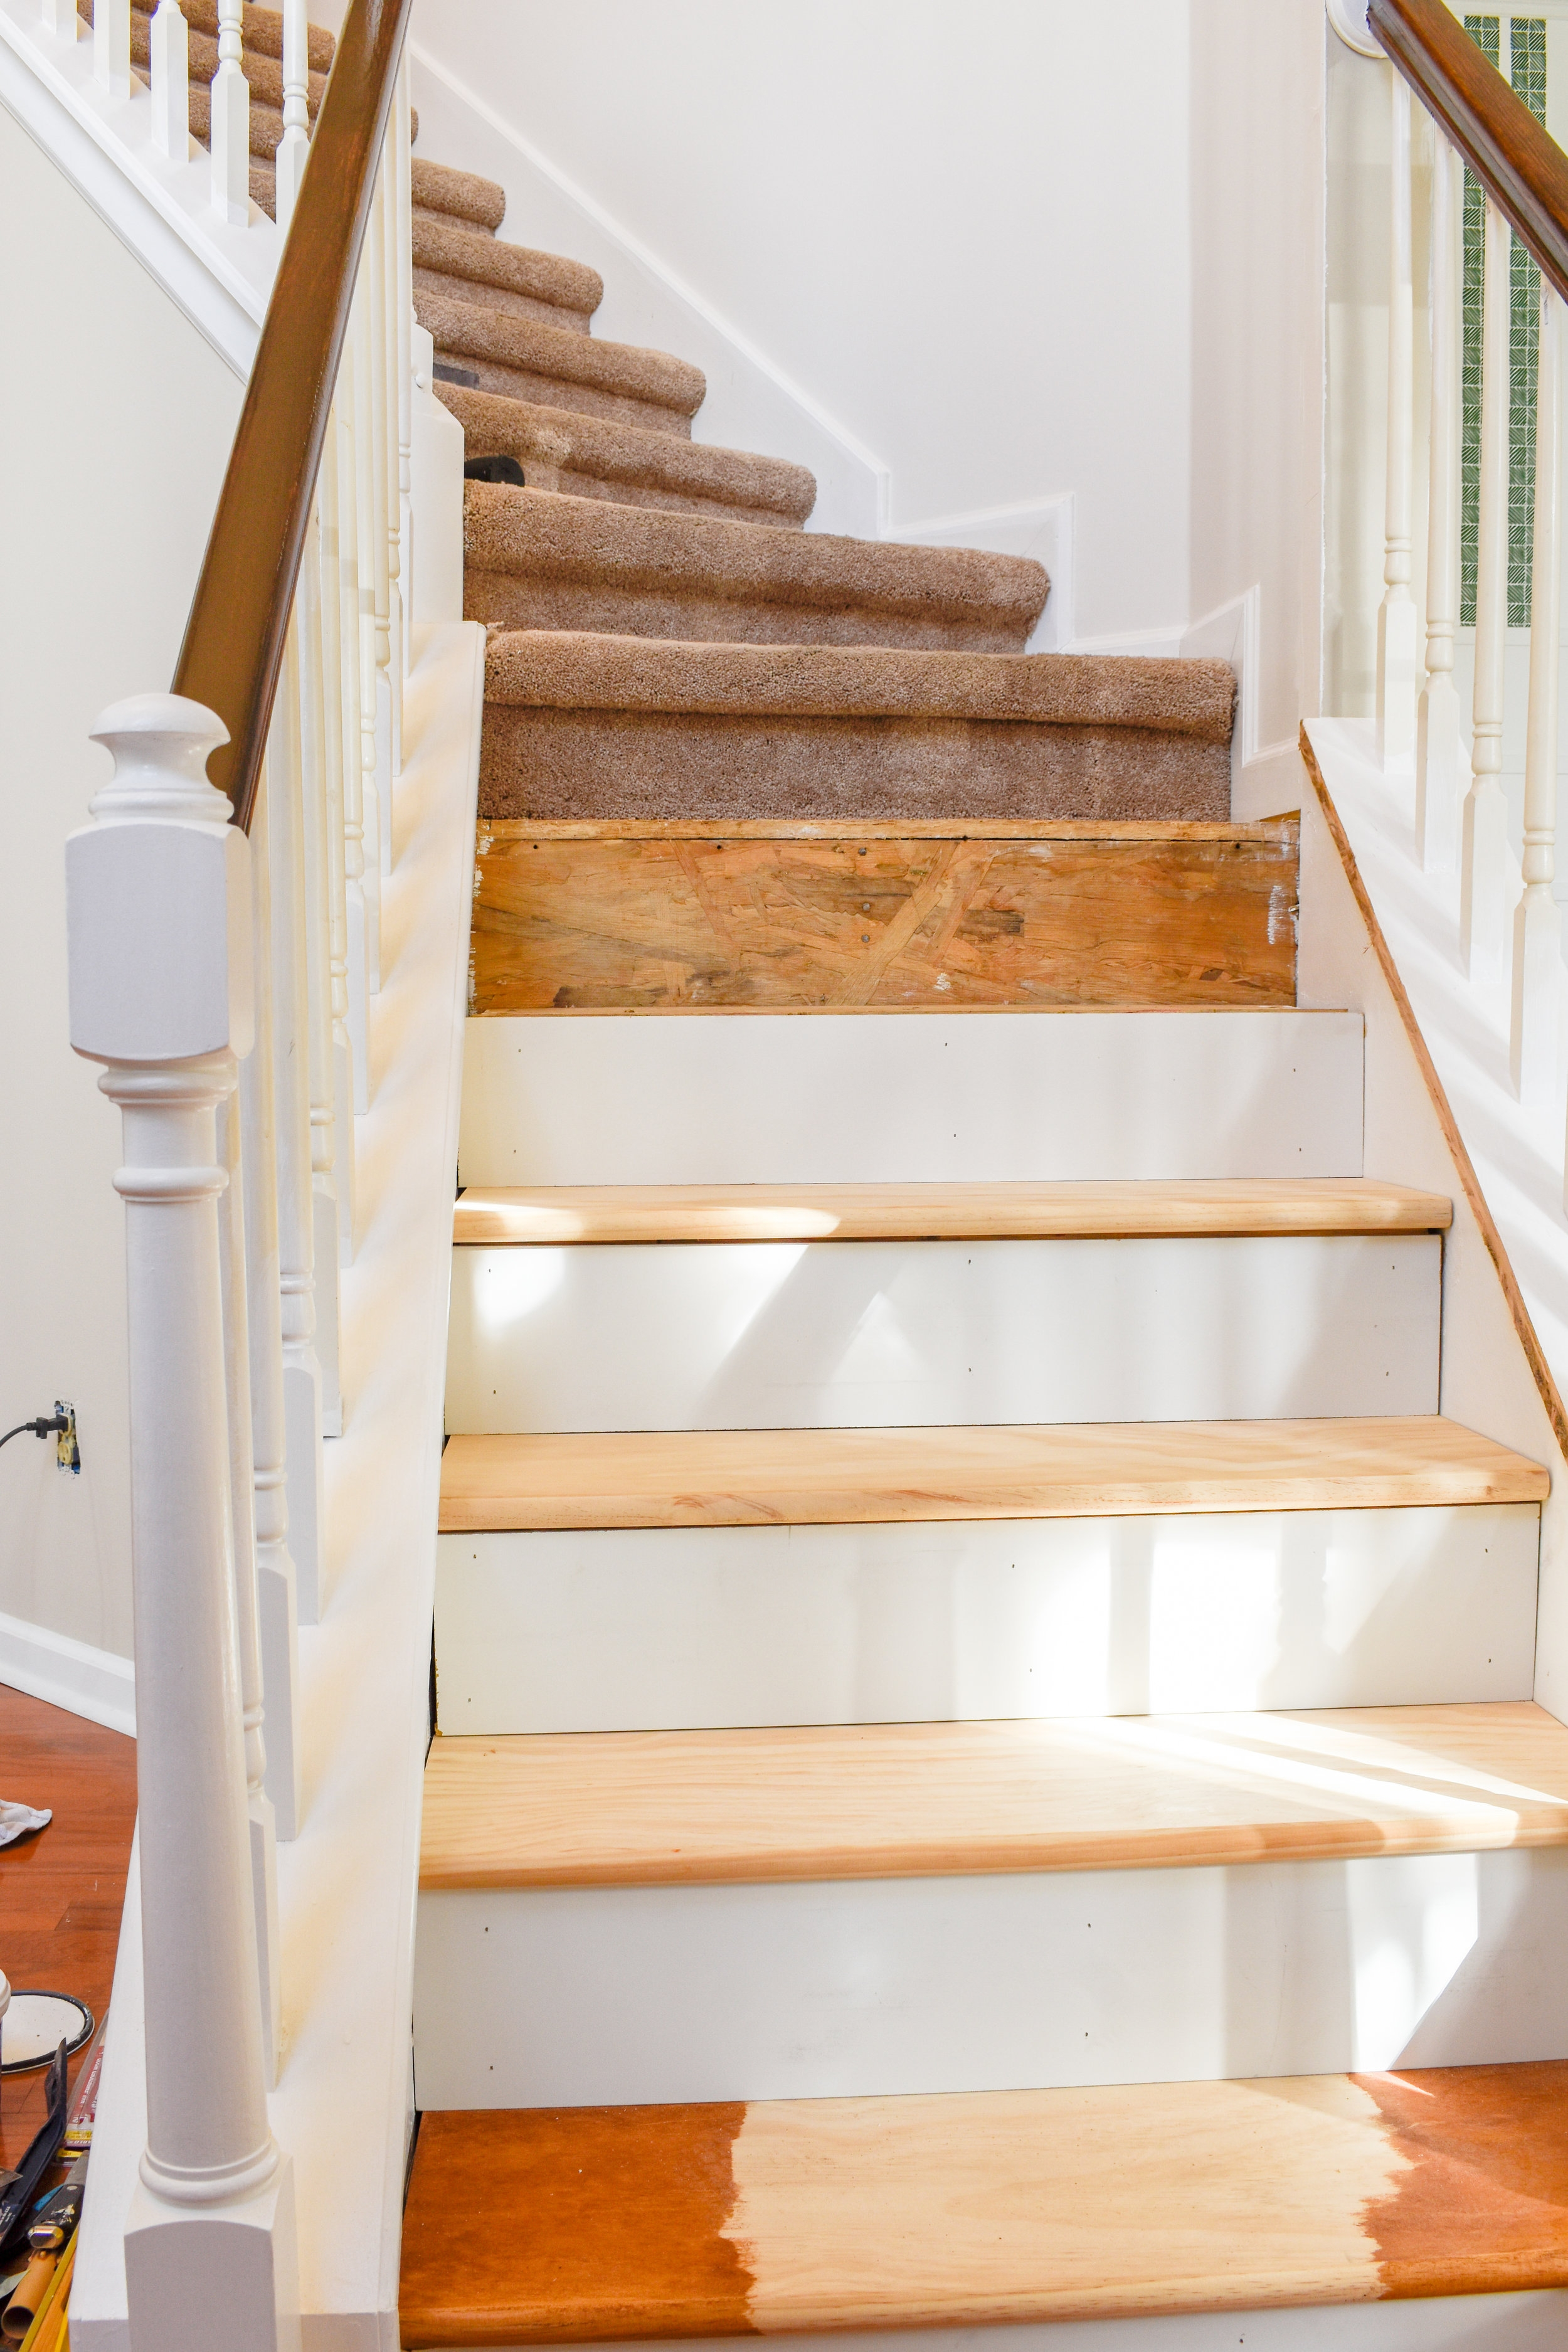 Diy Hardwood Staircase Makeover Replacing Carpet With Wood Treads | Cost To Have Stairs Carpeted | Wood | Stair Tread | Hardwood Flooring | Tile | Installation